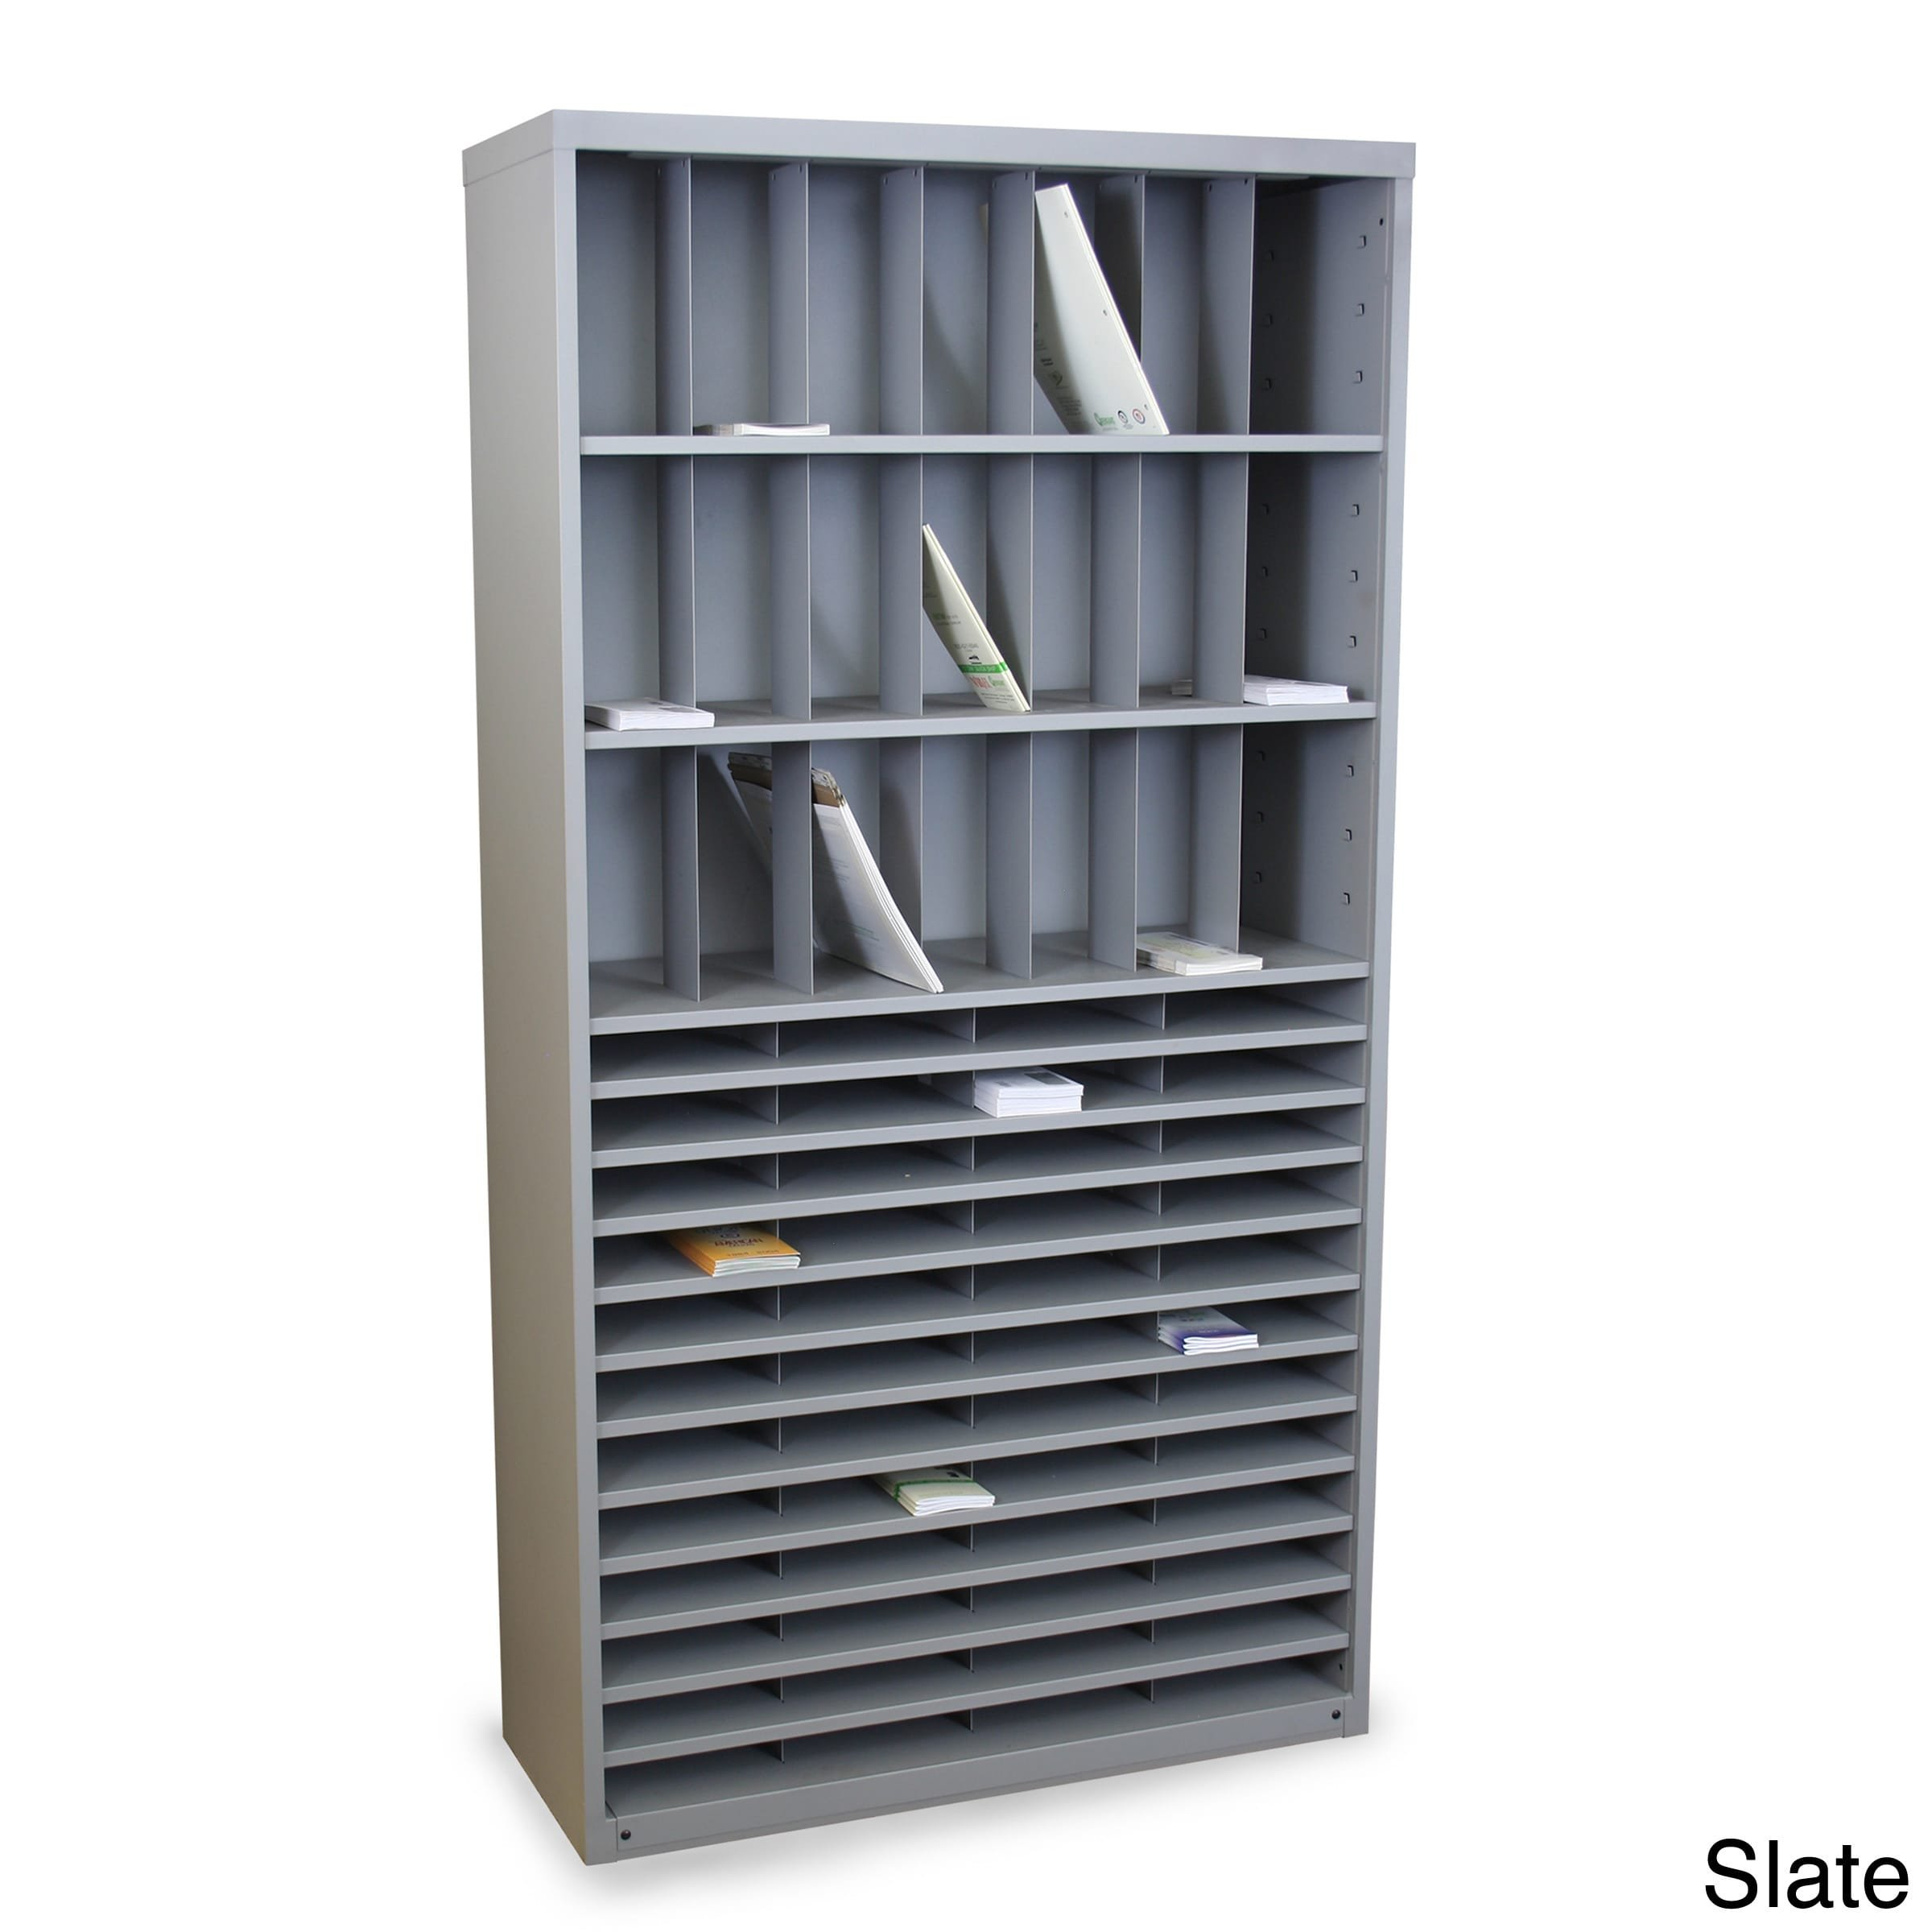 Mailroom Horizontal/Vertical Sorter with 69 Pockets Finish: Slate Gray